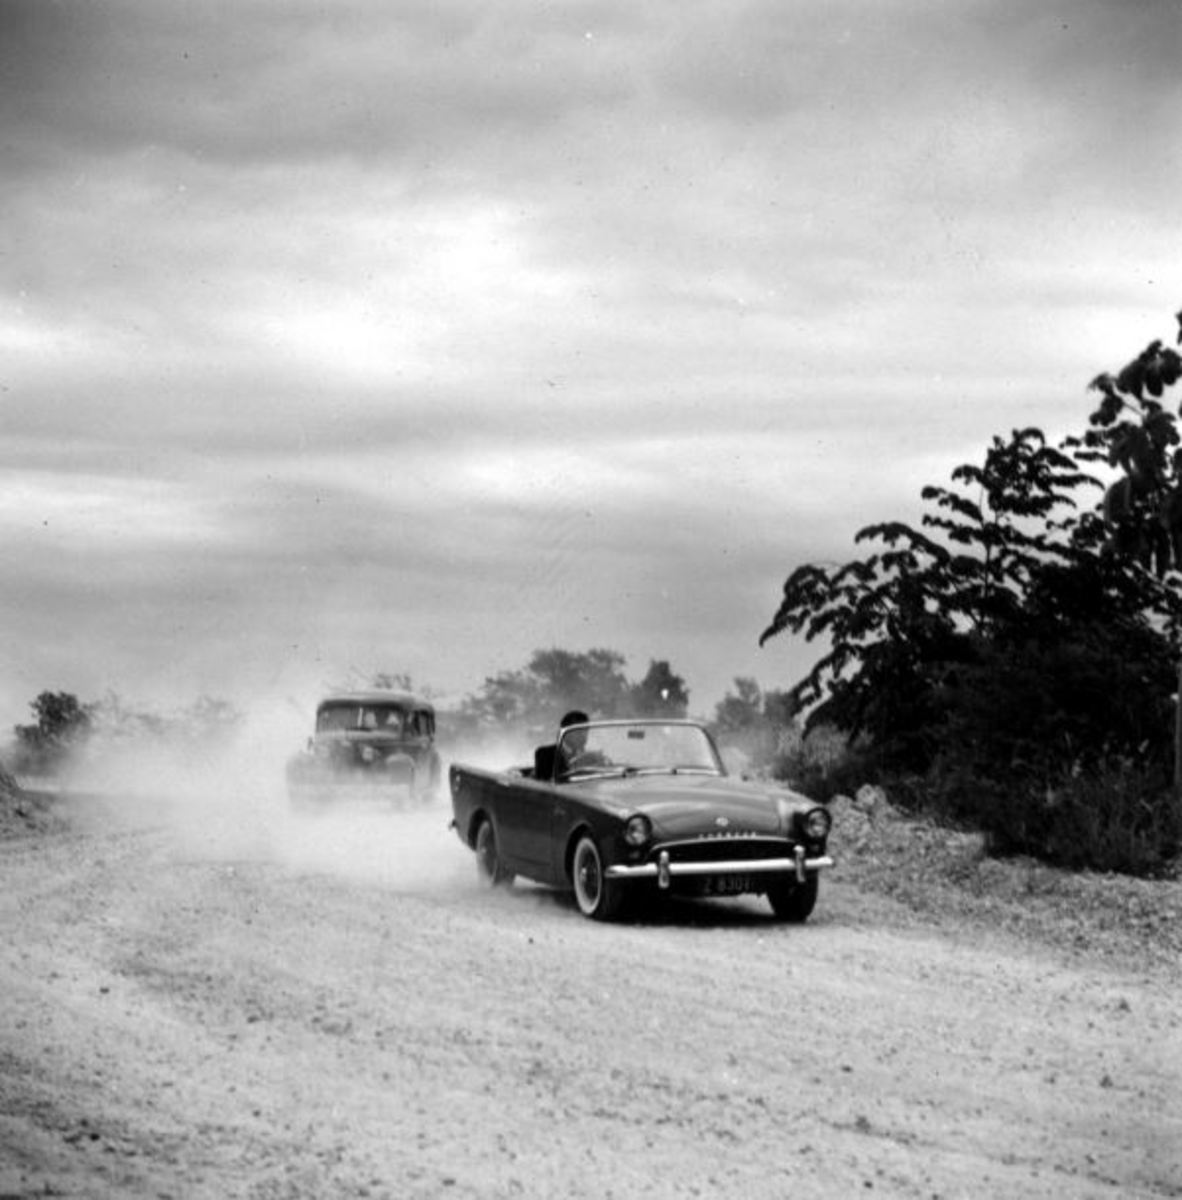 The first James Bond car, Sunbeam Alpine, is driven by Connery while being chased by The Three Blind Mice.